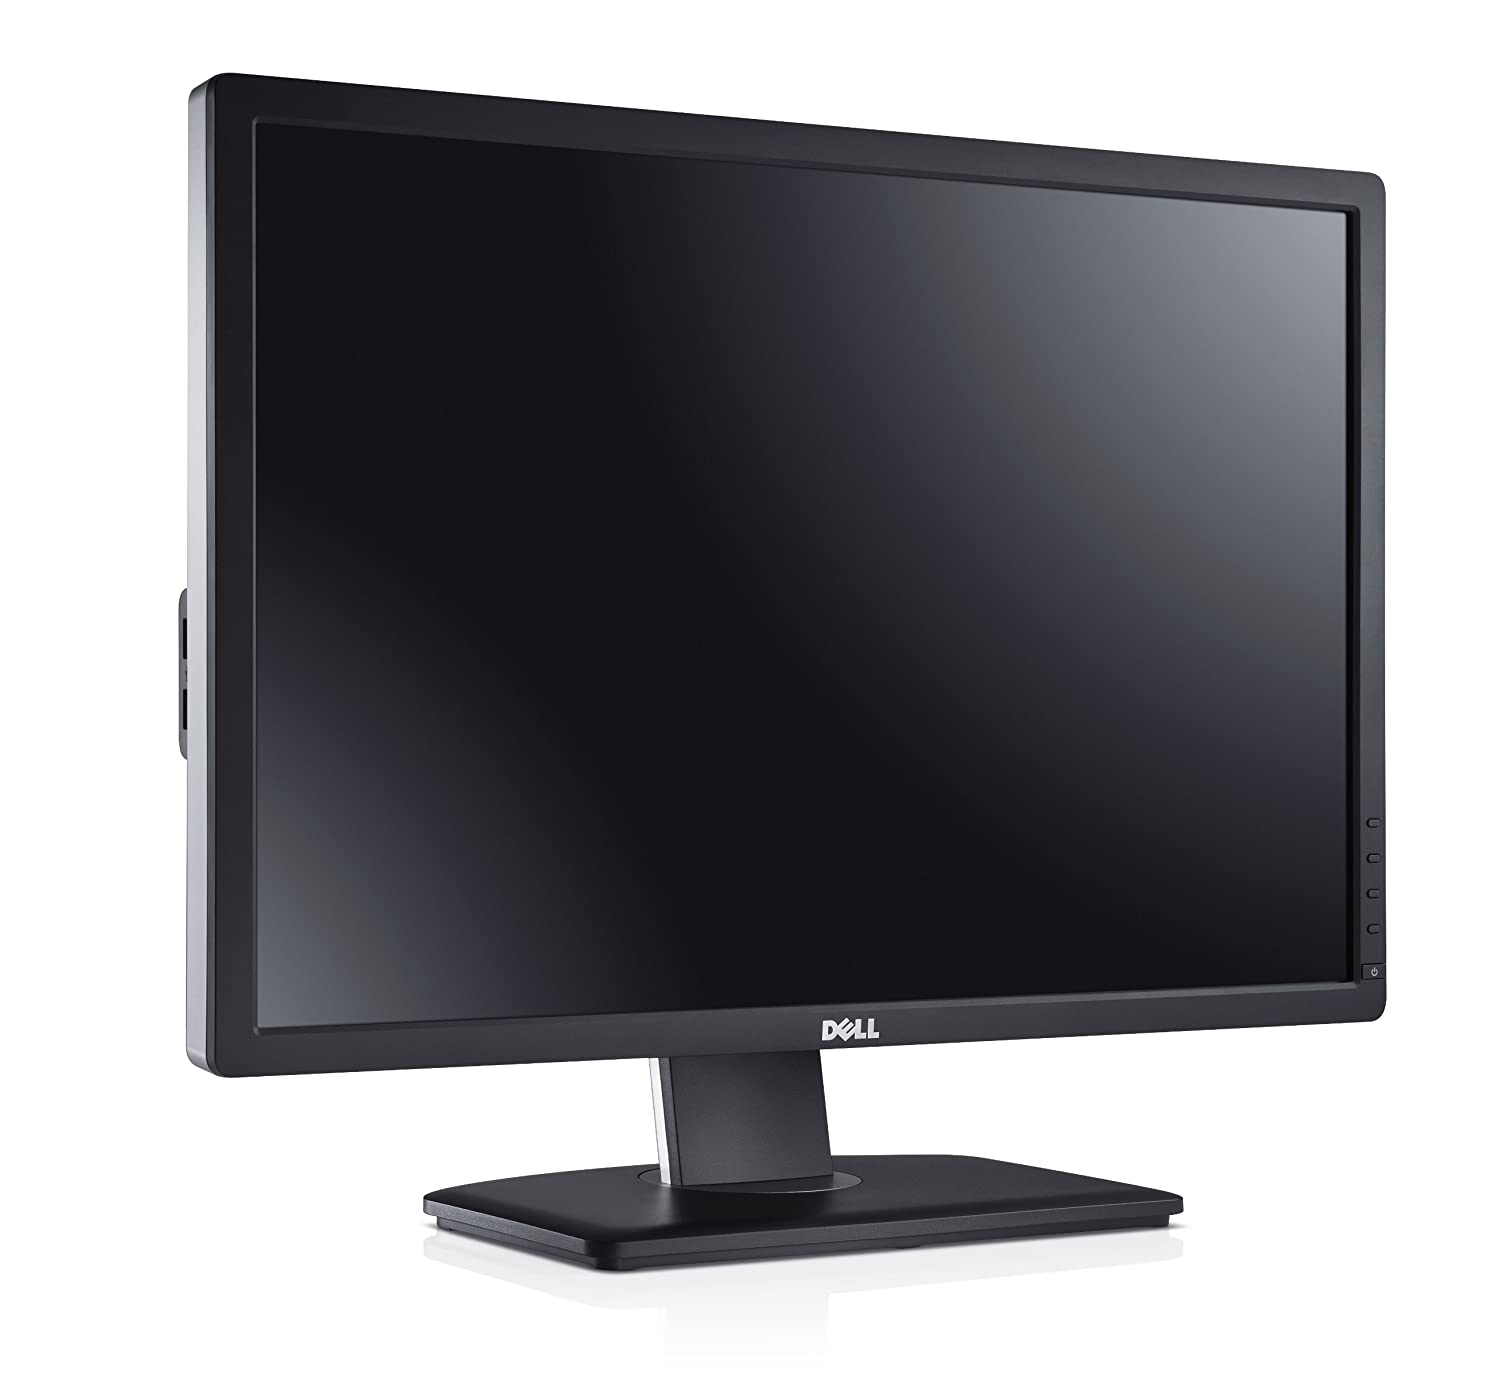 Dell UltraSharp U2412M 24″ LED LCD Monitor – 16:10 – 8 ms ,$289